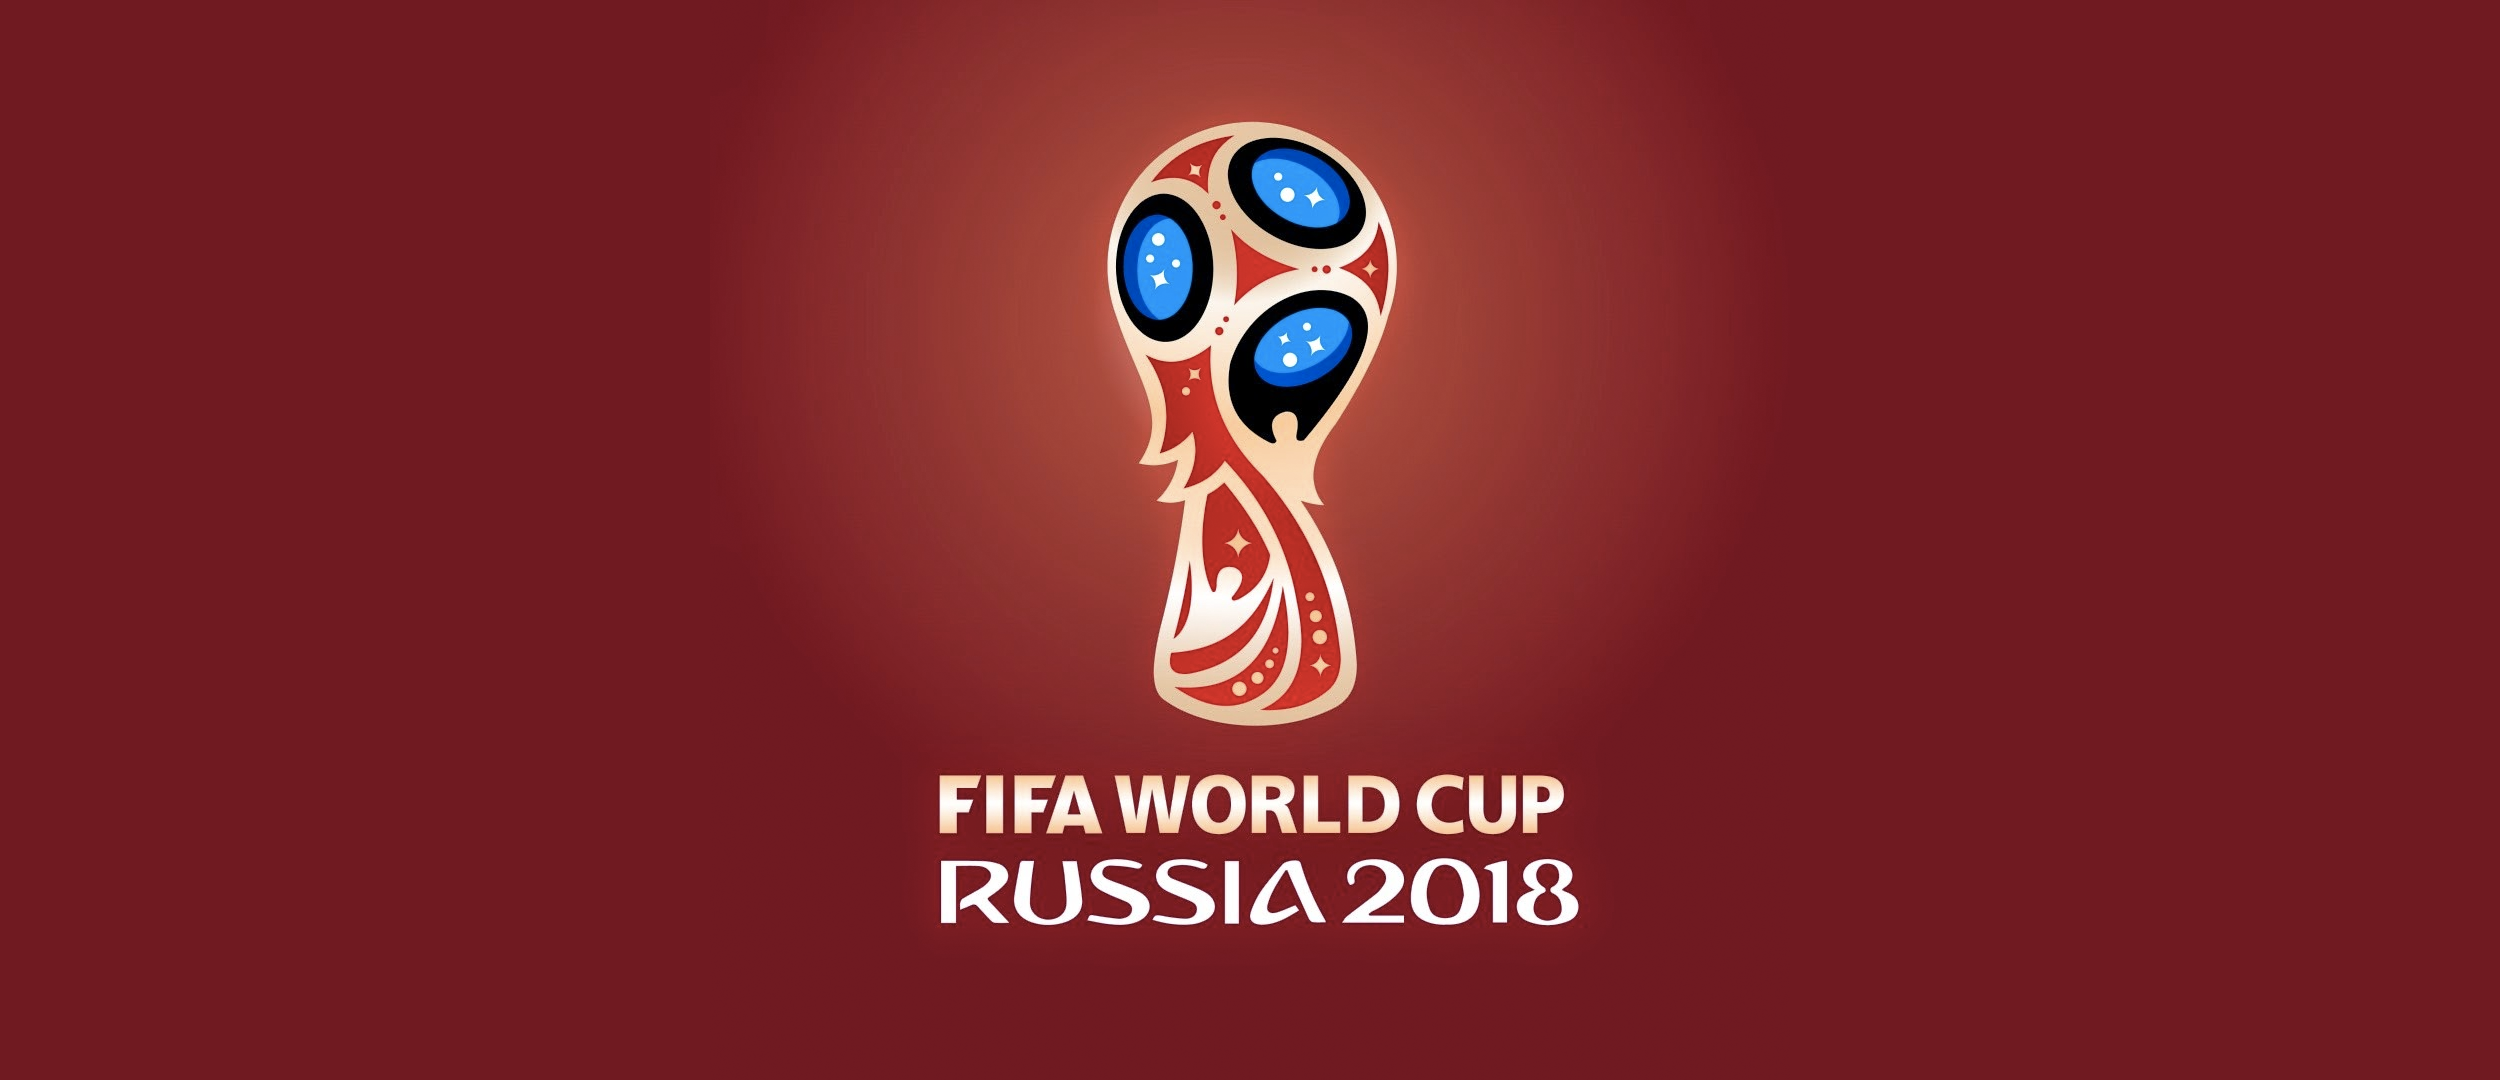 Mls Fifa World Cup Russia 2018 All The Countries That Have Qualified So Far World Cup Fixtures World Cup Russia 2018 Russia World Cup